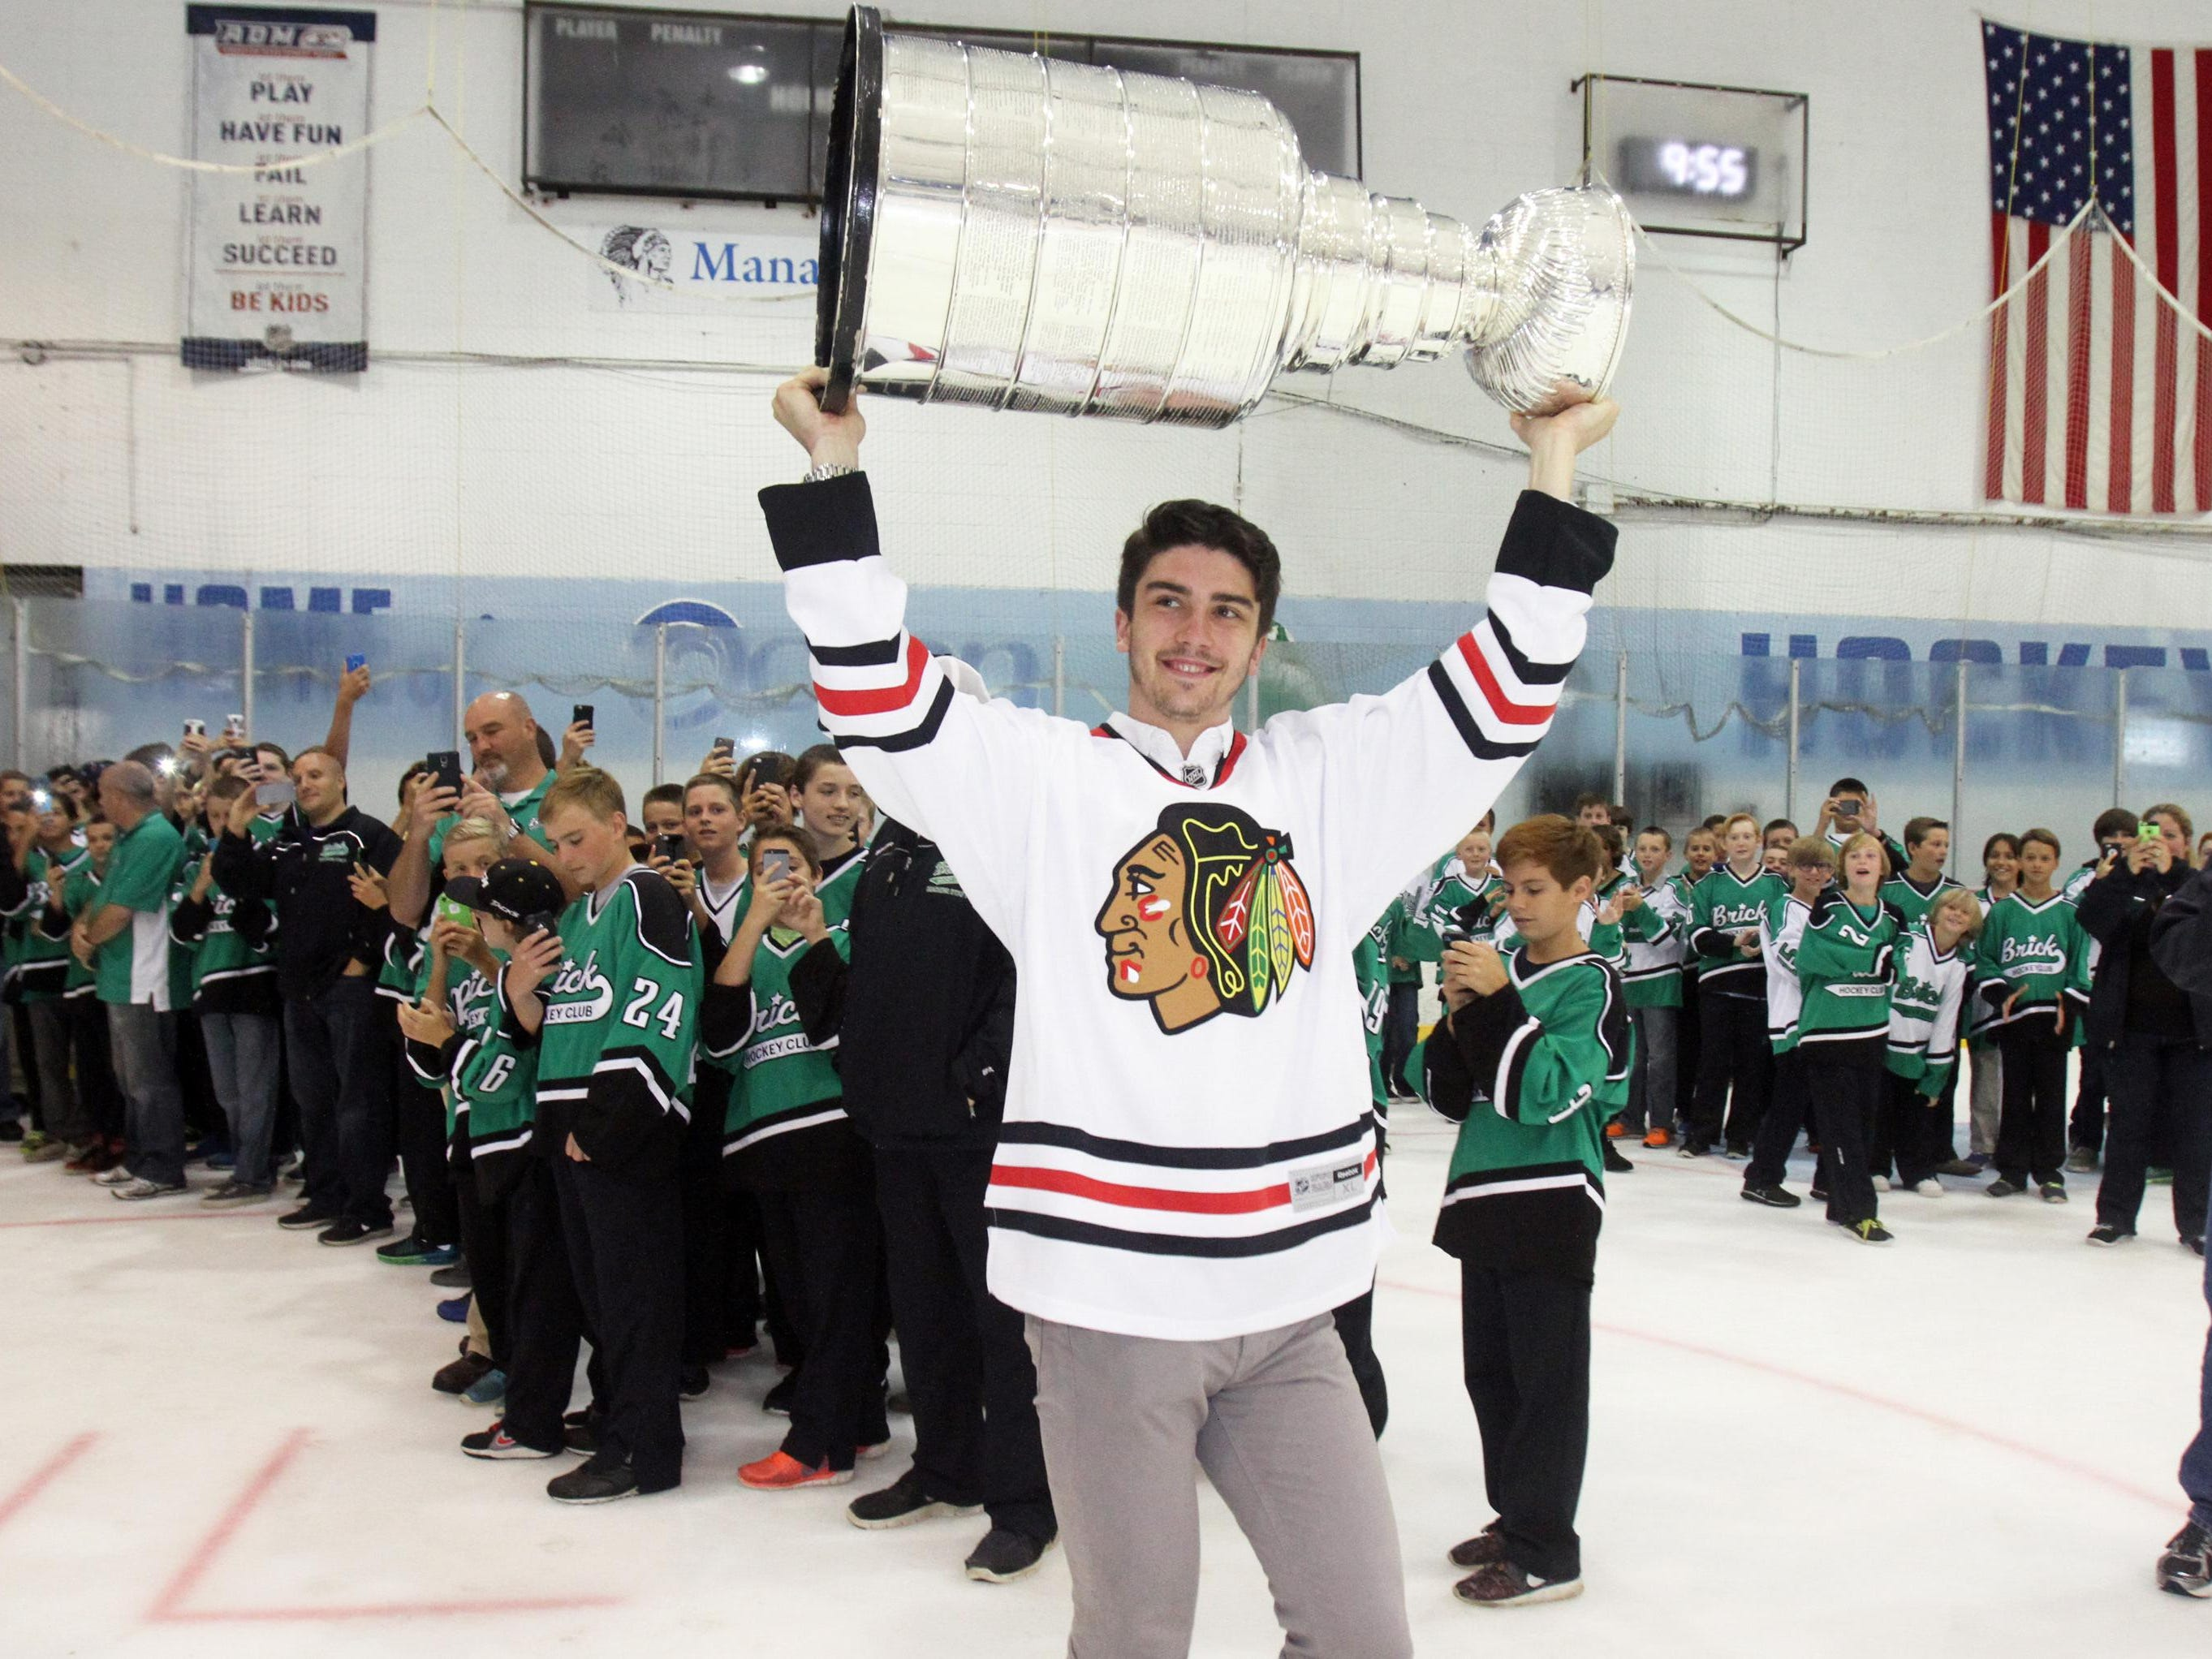 Former CBA standout and member of the Chicago Blackhawks Trevor van Riemsdyk brings the Stanley Cup onto the ice at the Ocean Ice Palace in Brick on July 30.